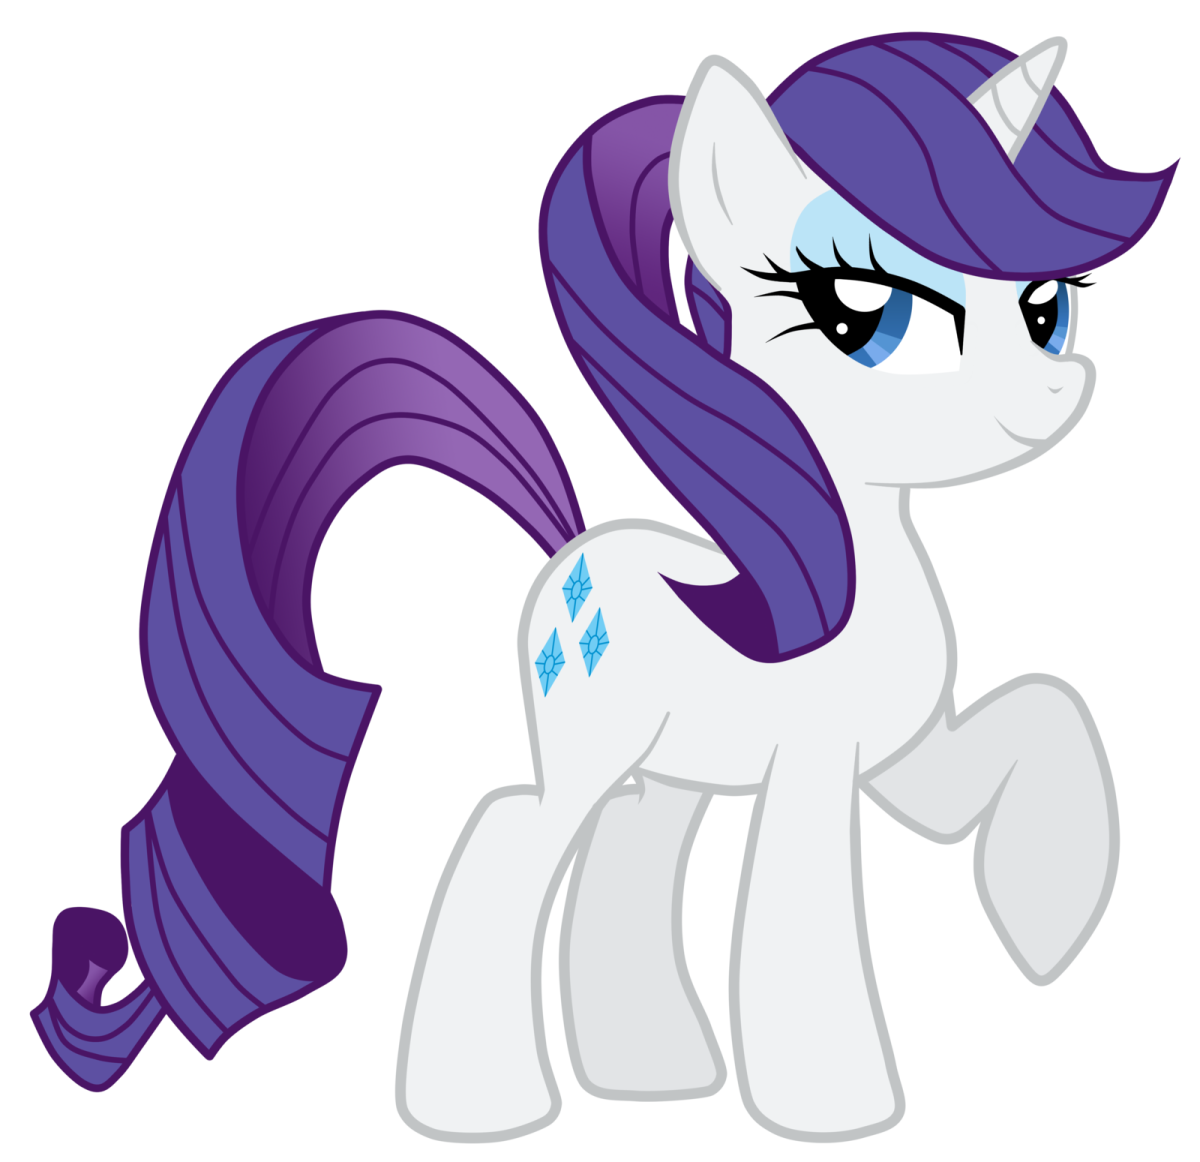 Why hello dear im Rarity. Isn't my hair simply beautiful! Theres so many different costumes and hair styles I can make for you darling you really should come check out my fan page - gorgeous ponies should all have fan pages like mine!